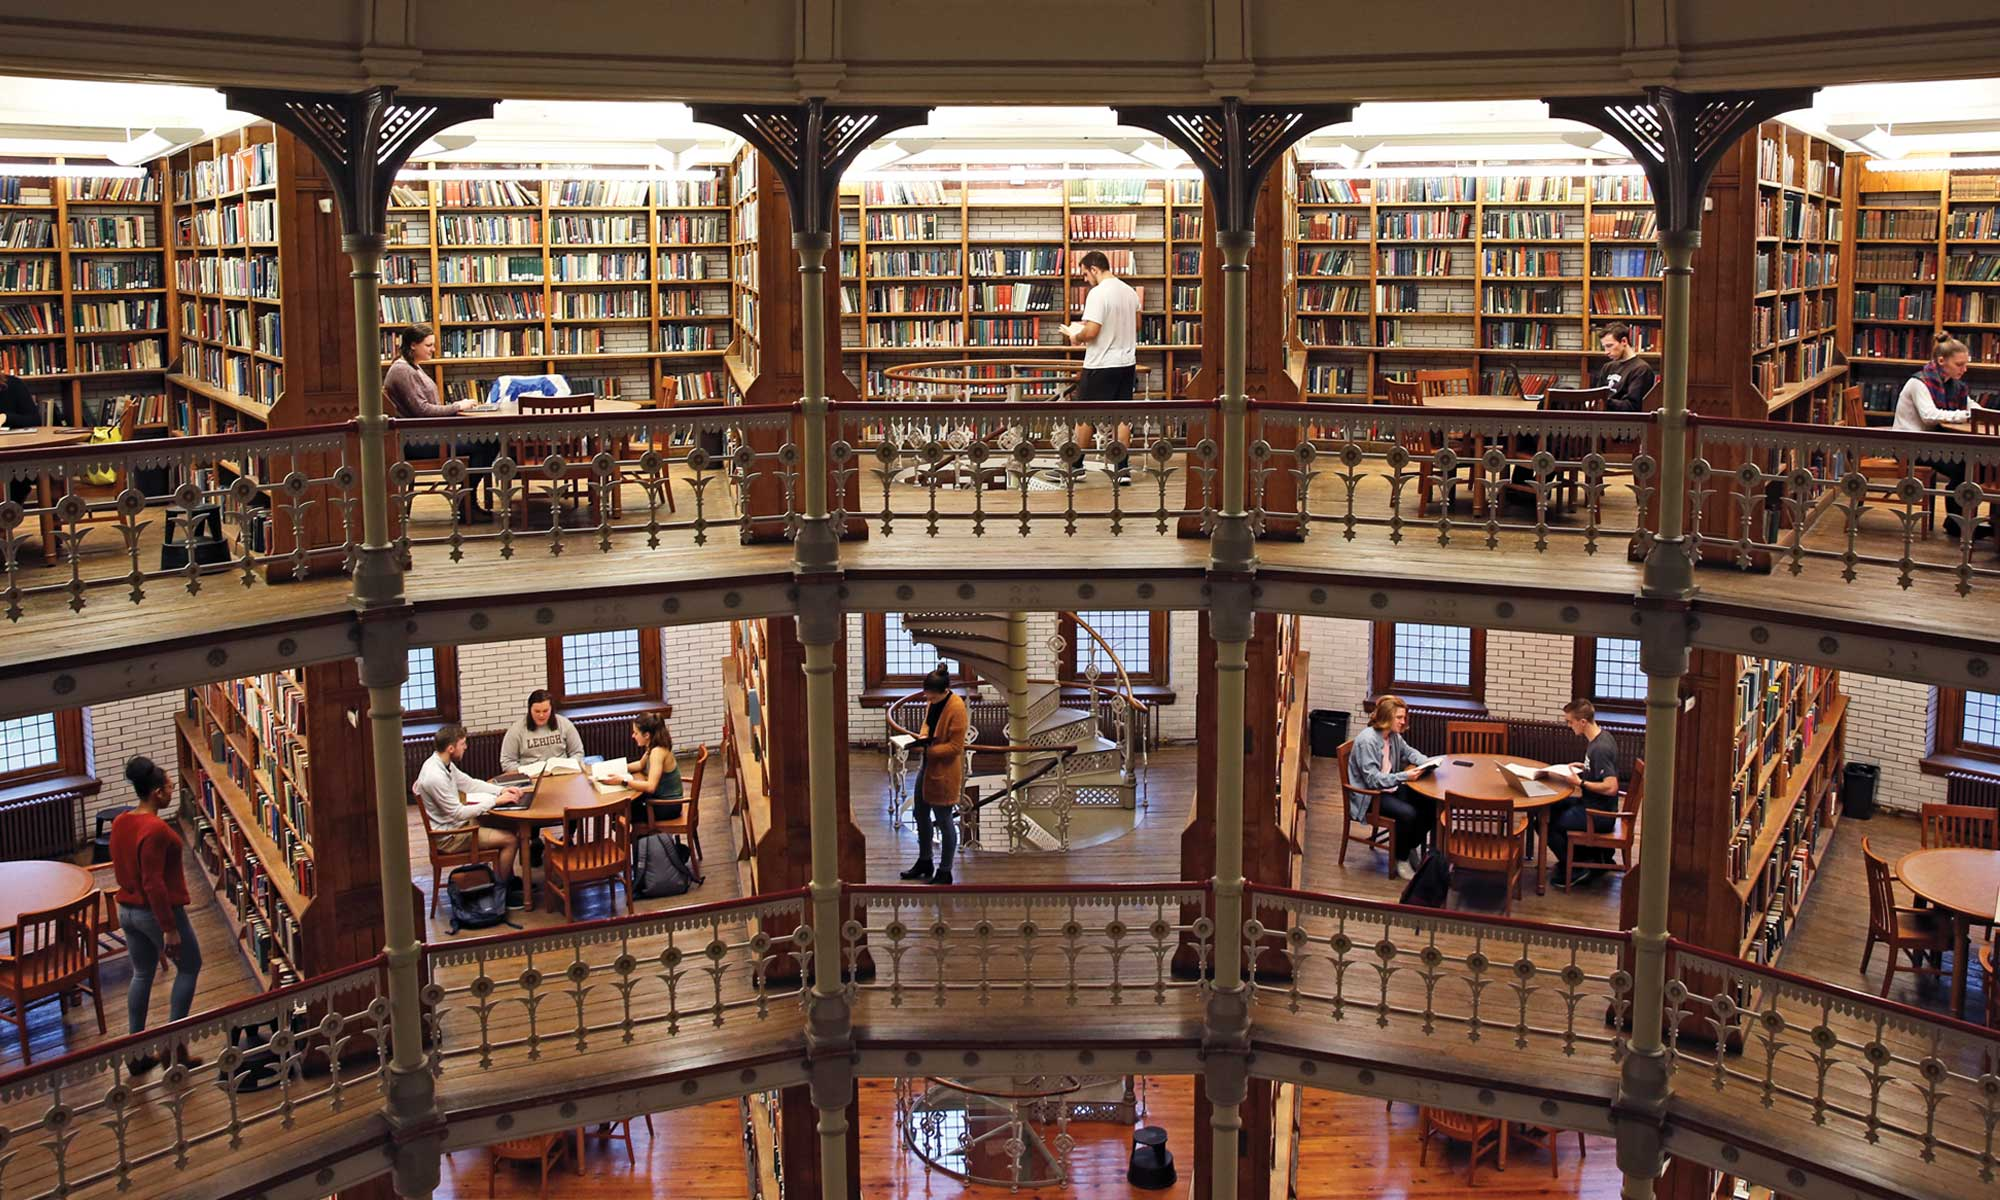 Students studying in Linderman Library rotunda